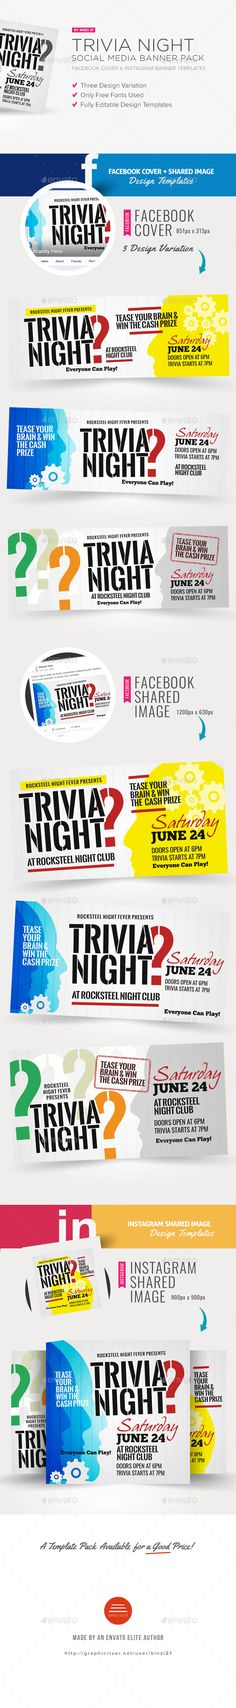 Trivia Night Flyer Templates | Flyer template, Brochure template ...